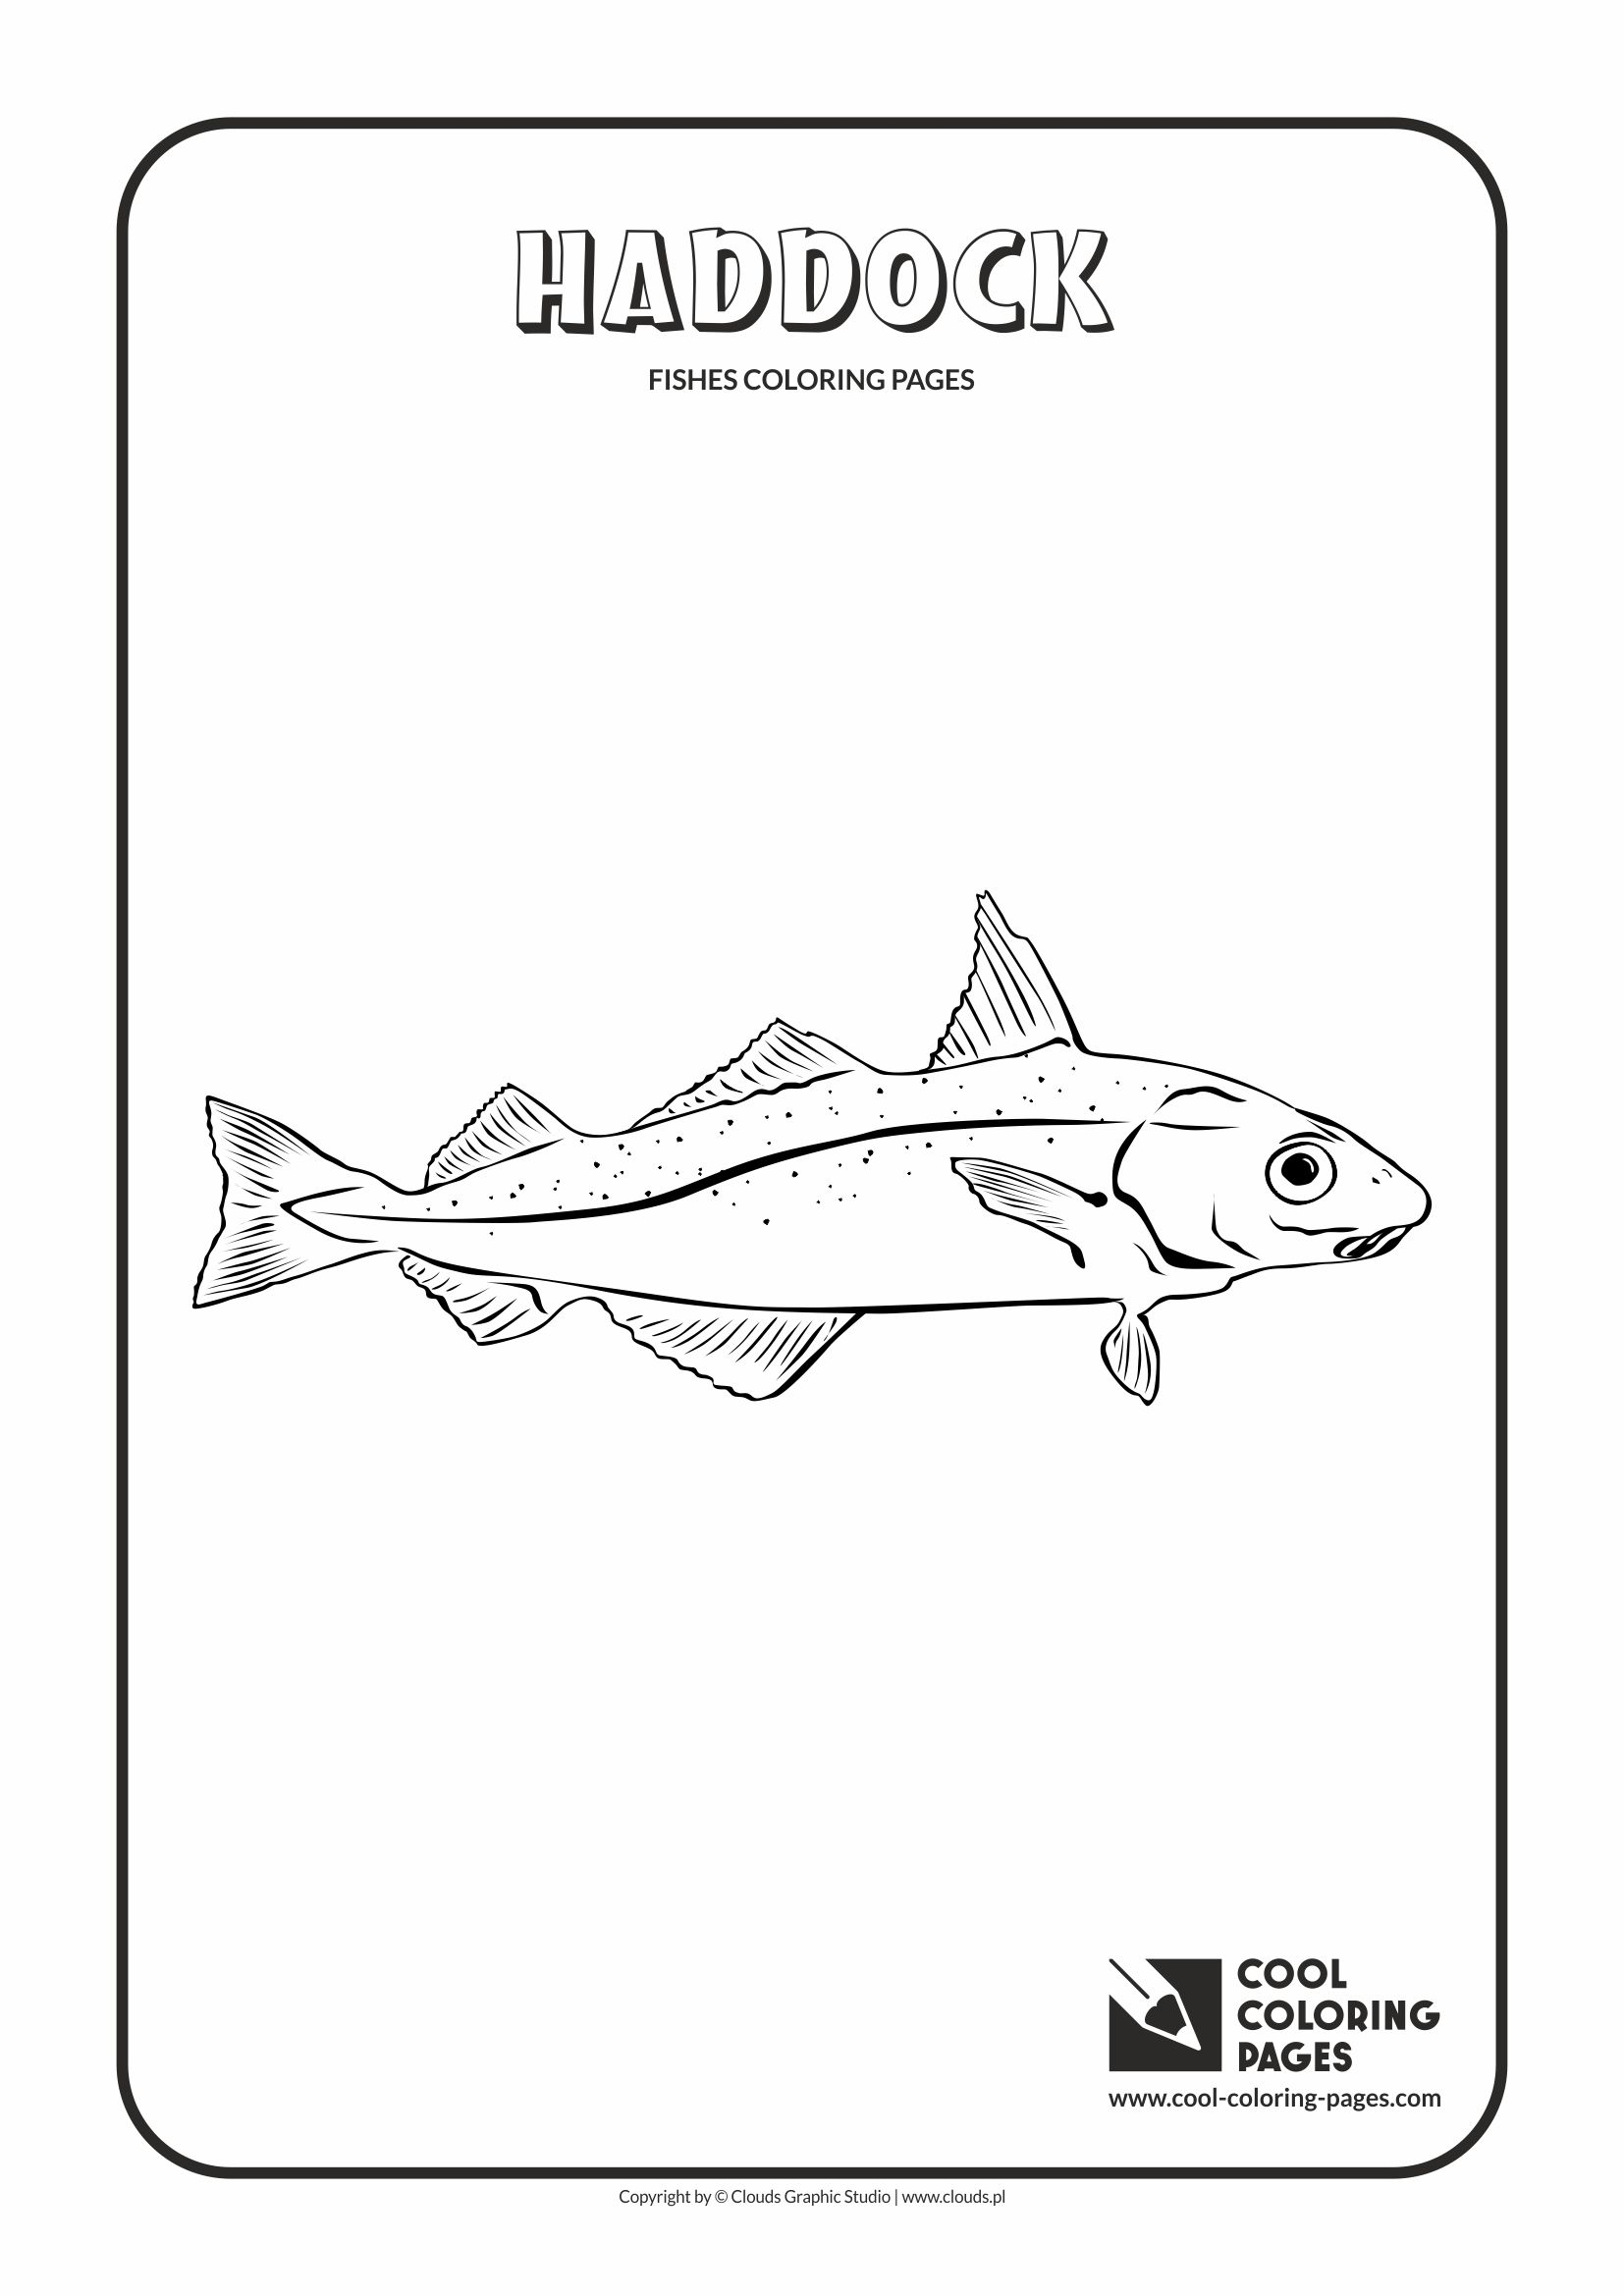 haddock coloring page cool coloring pages